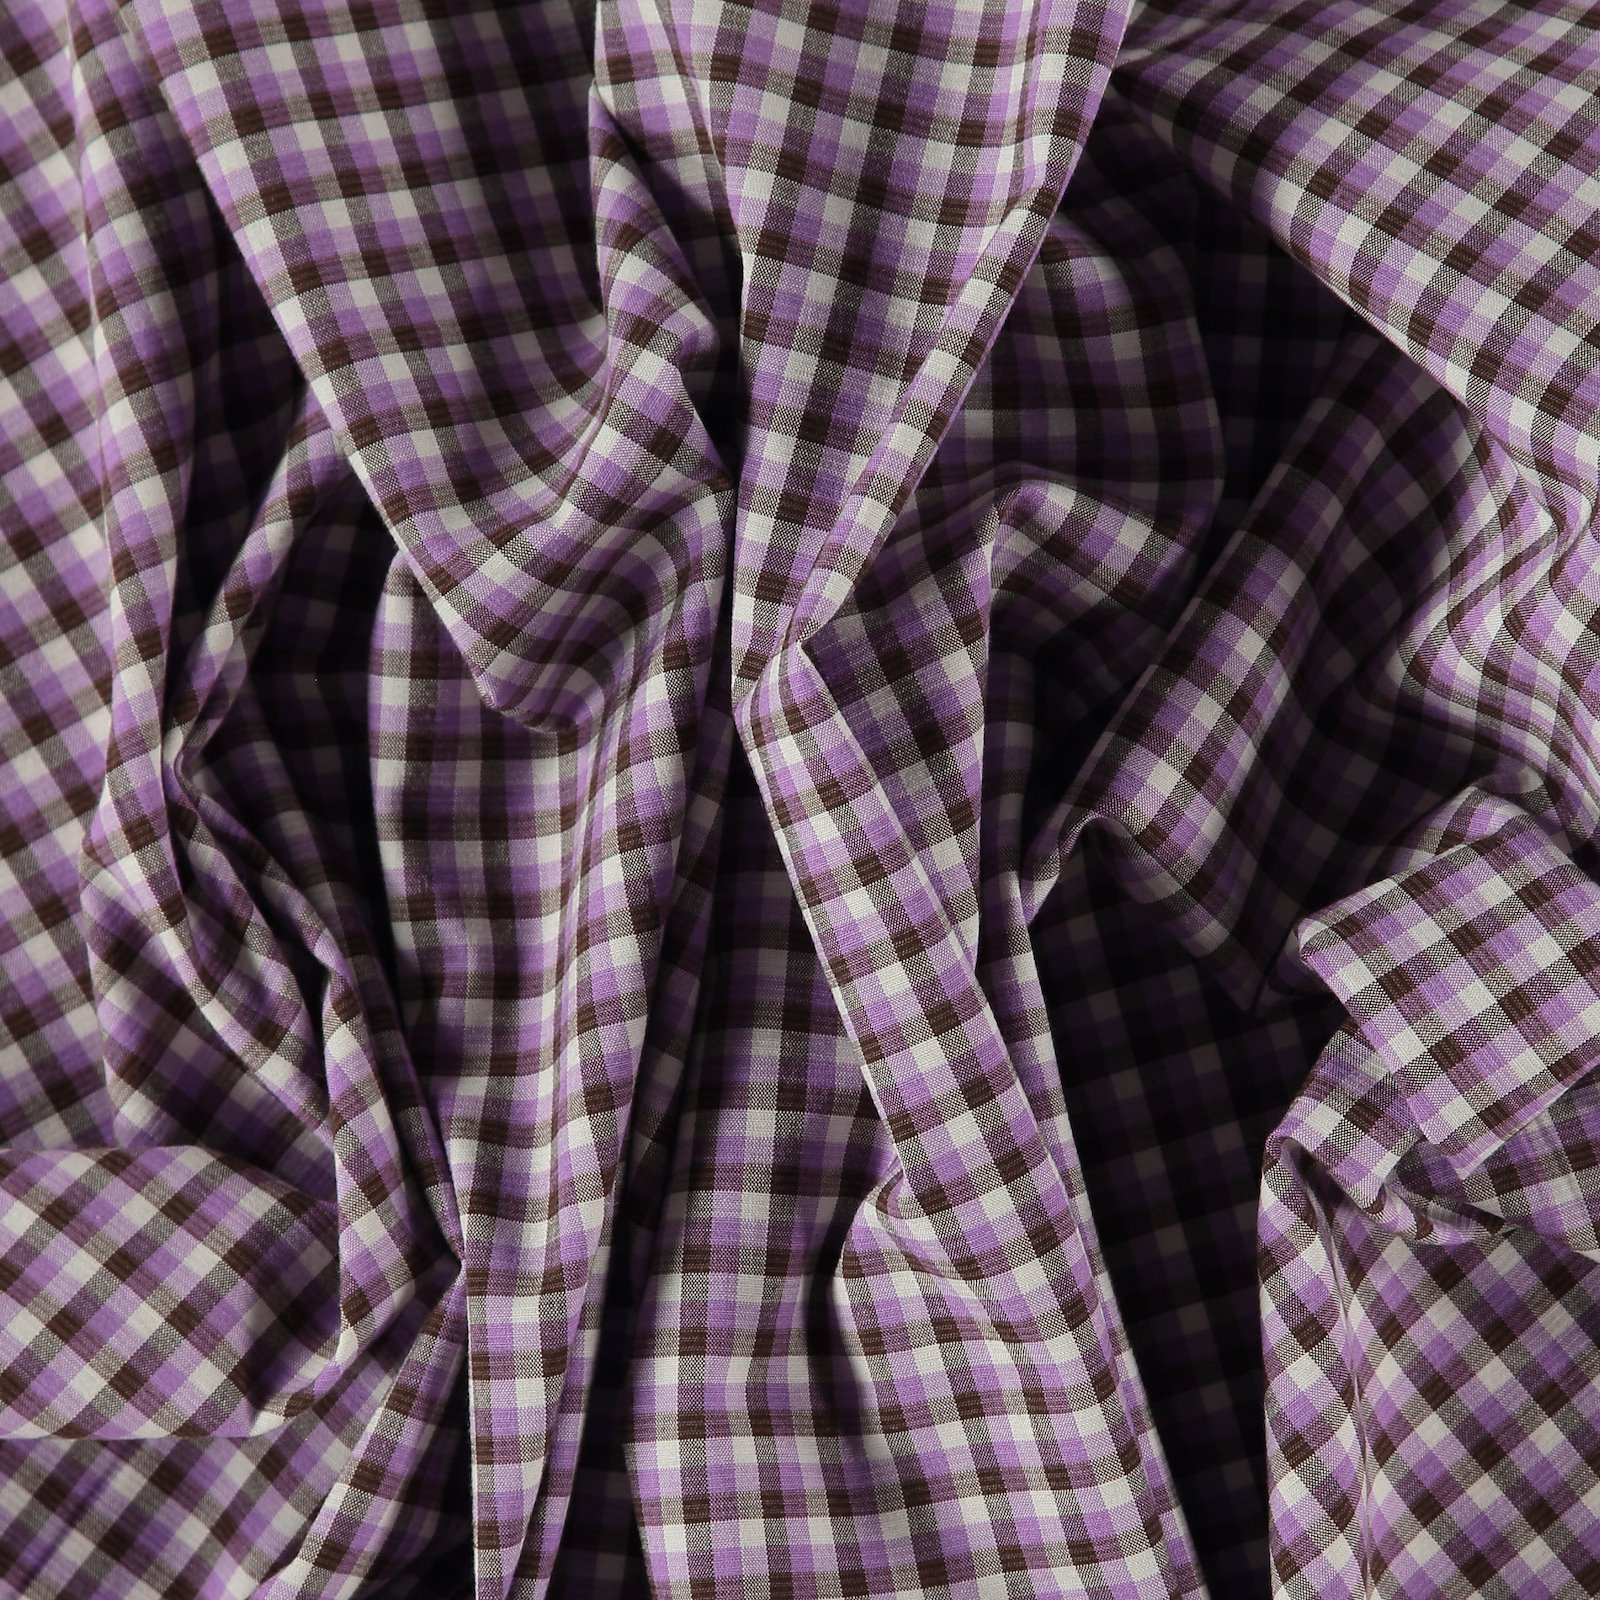 Woven YD check stretch purple/brown/sand